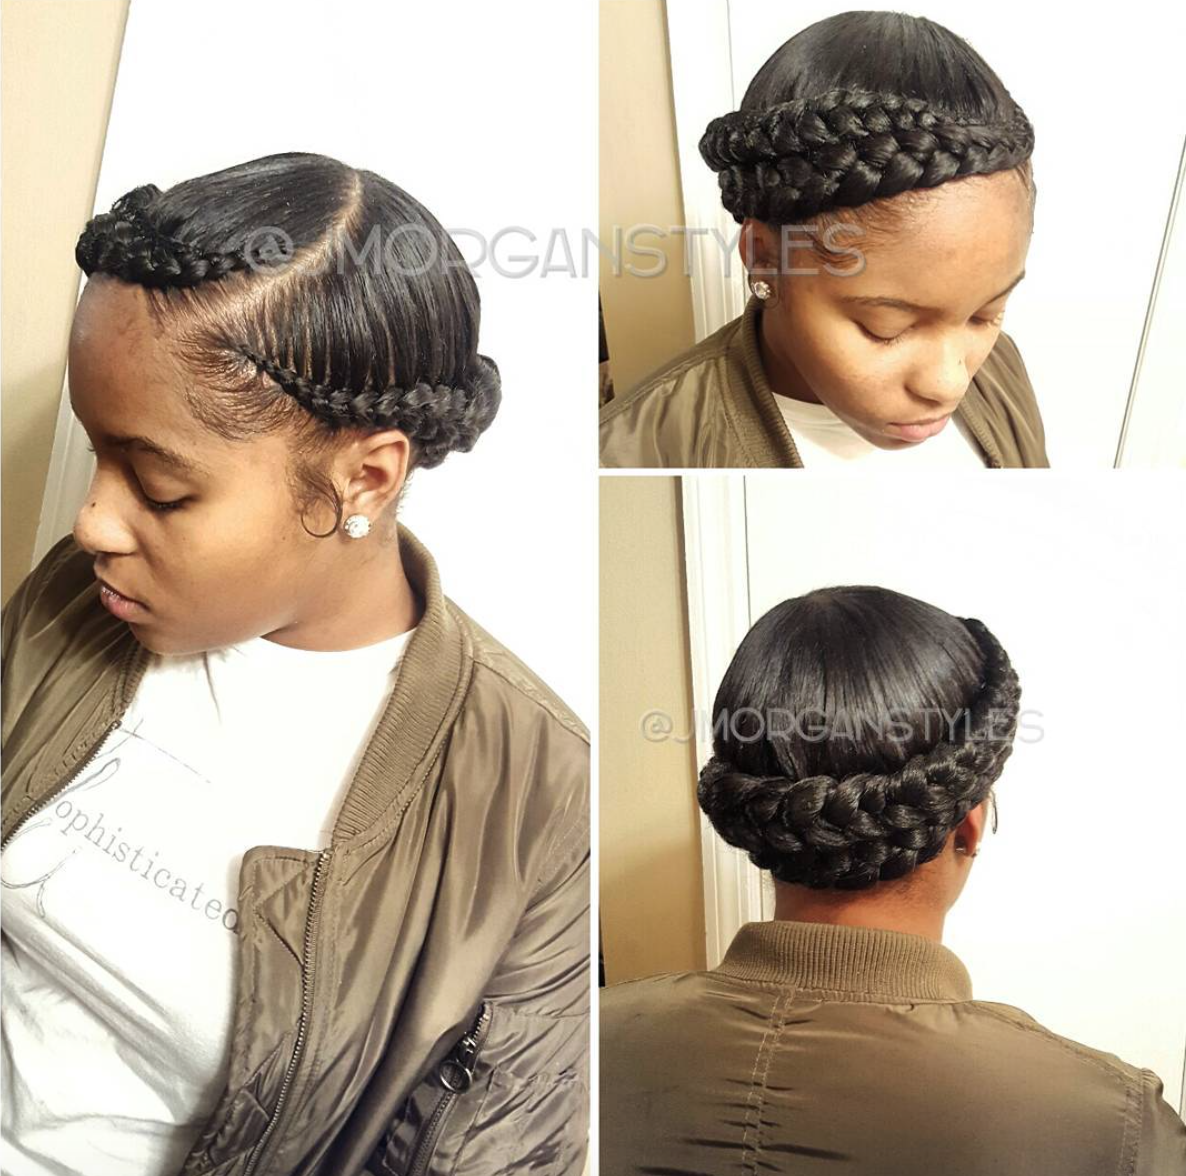 Black Hair Style Pictures by wearticles.com